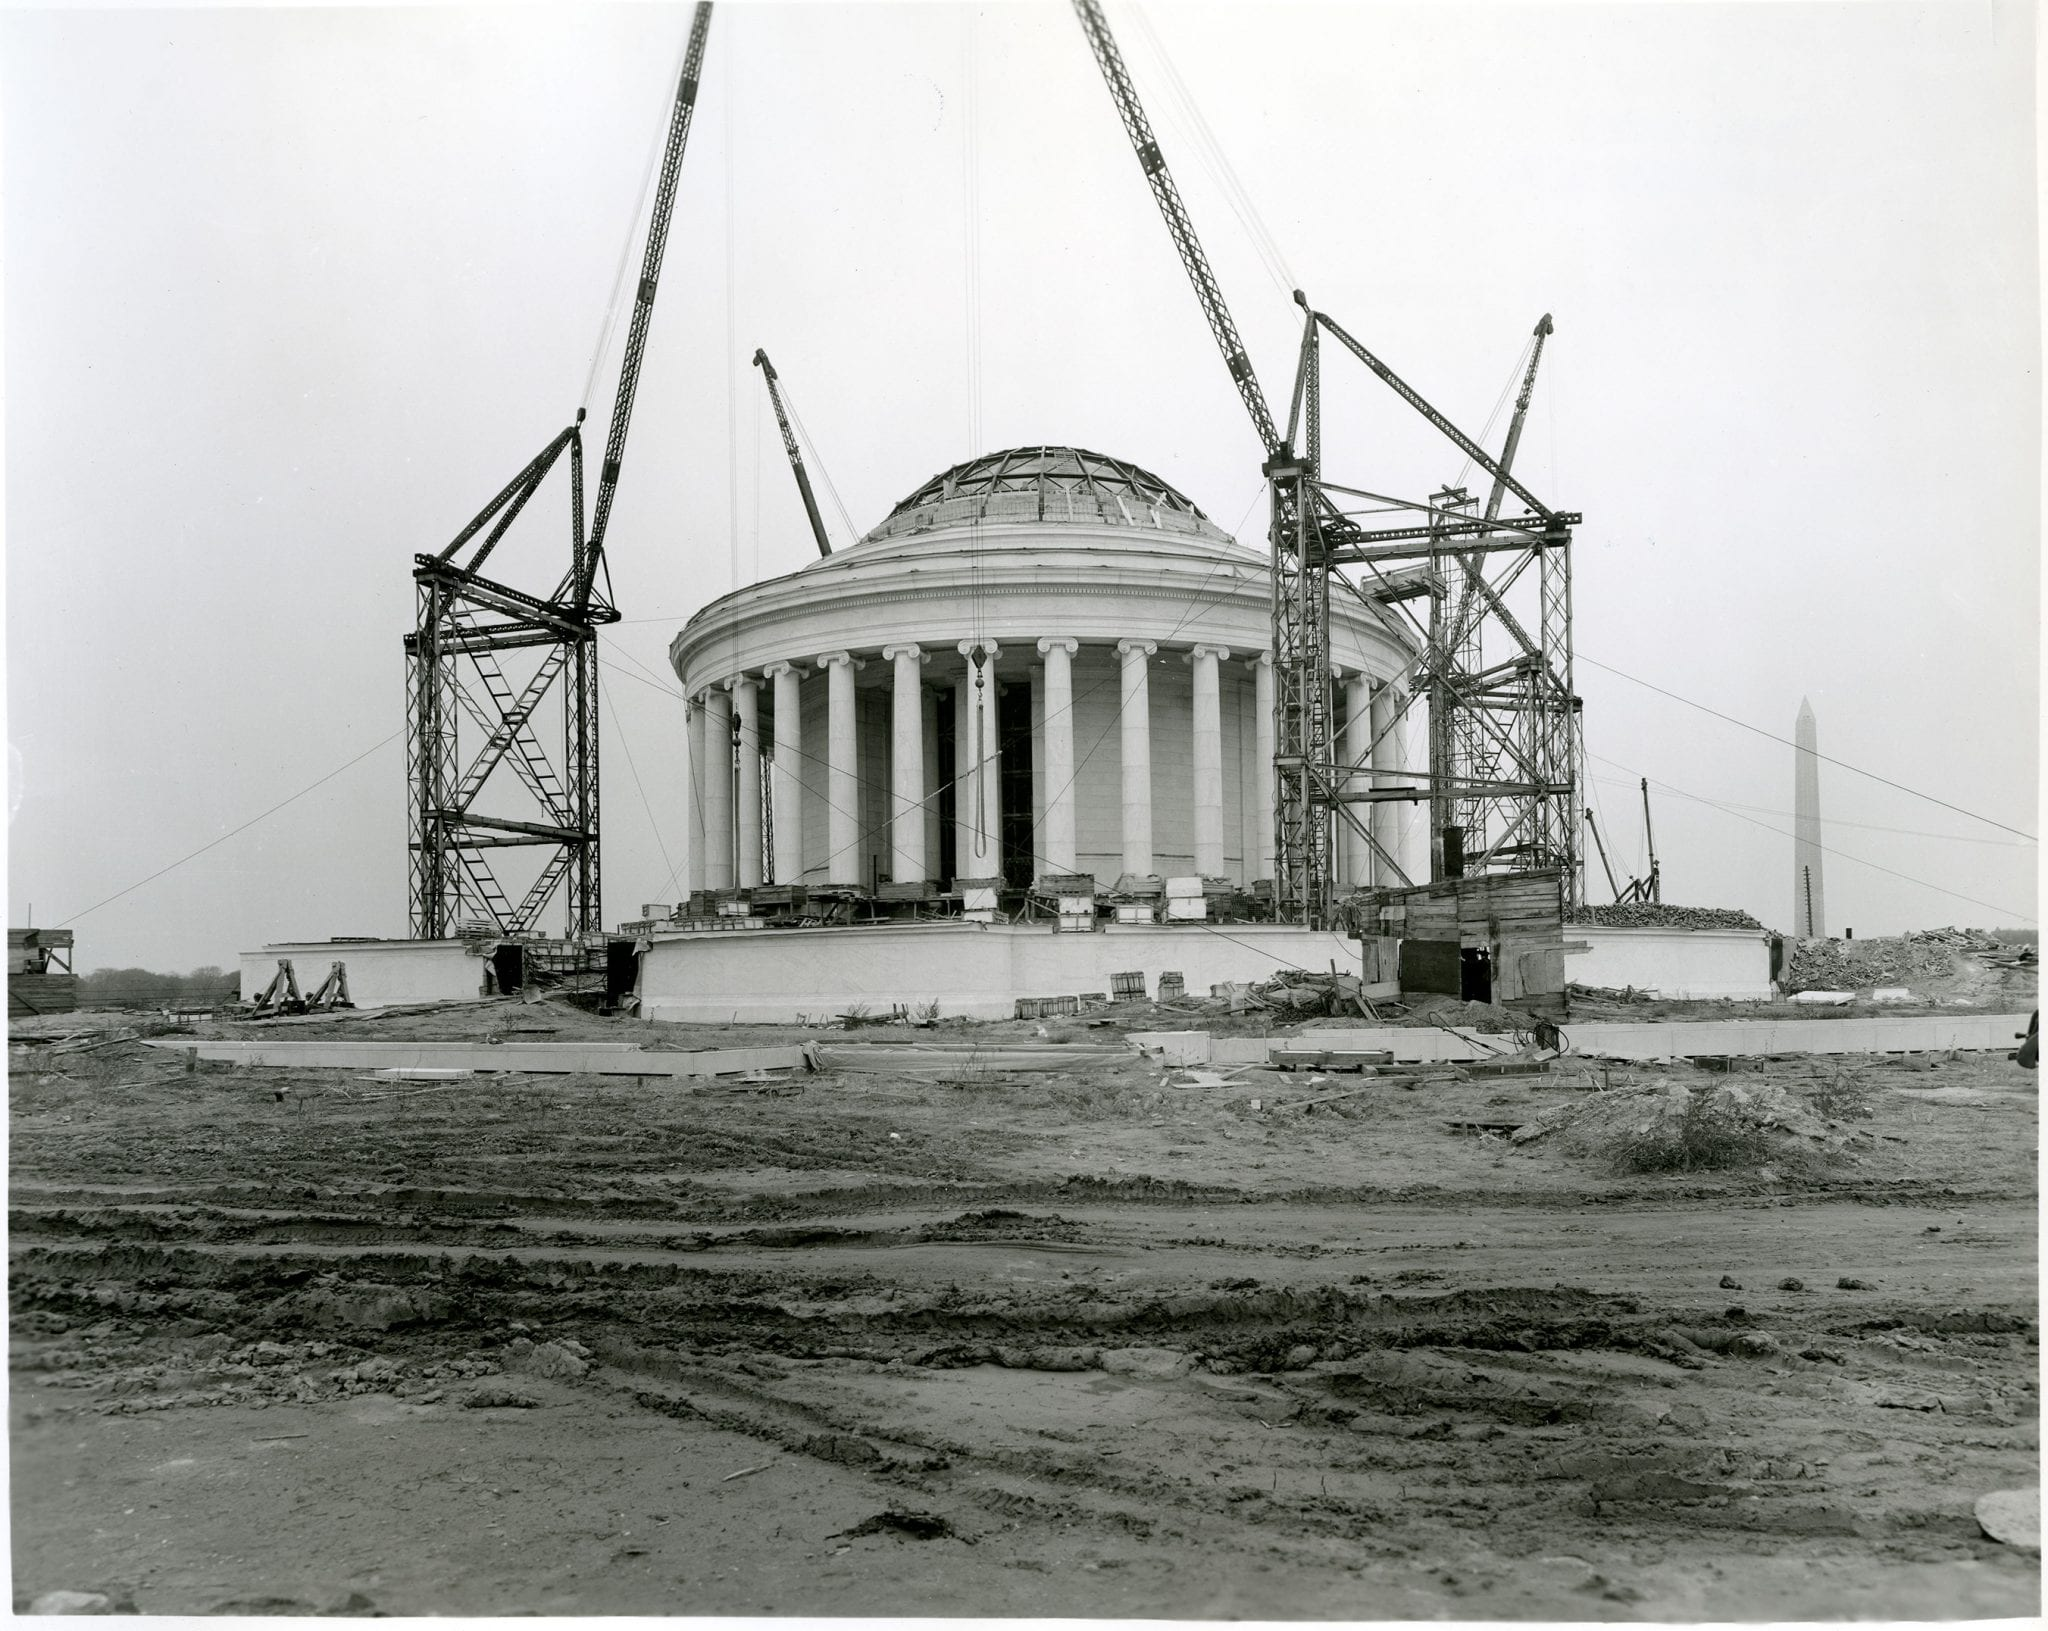 November 1, 1940: Thomas Jefferson Memorial Superstructure. Tidal Basin, Washington, DC. Direction: Central view of southeast face